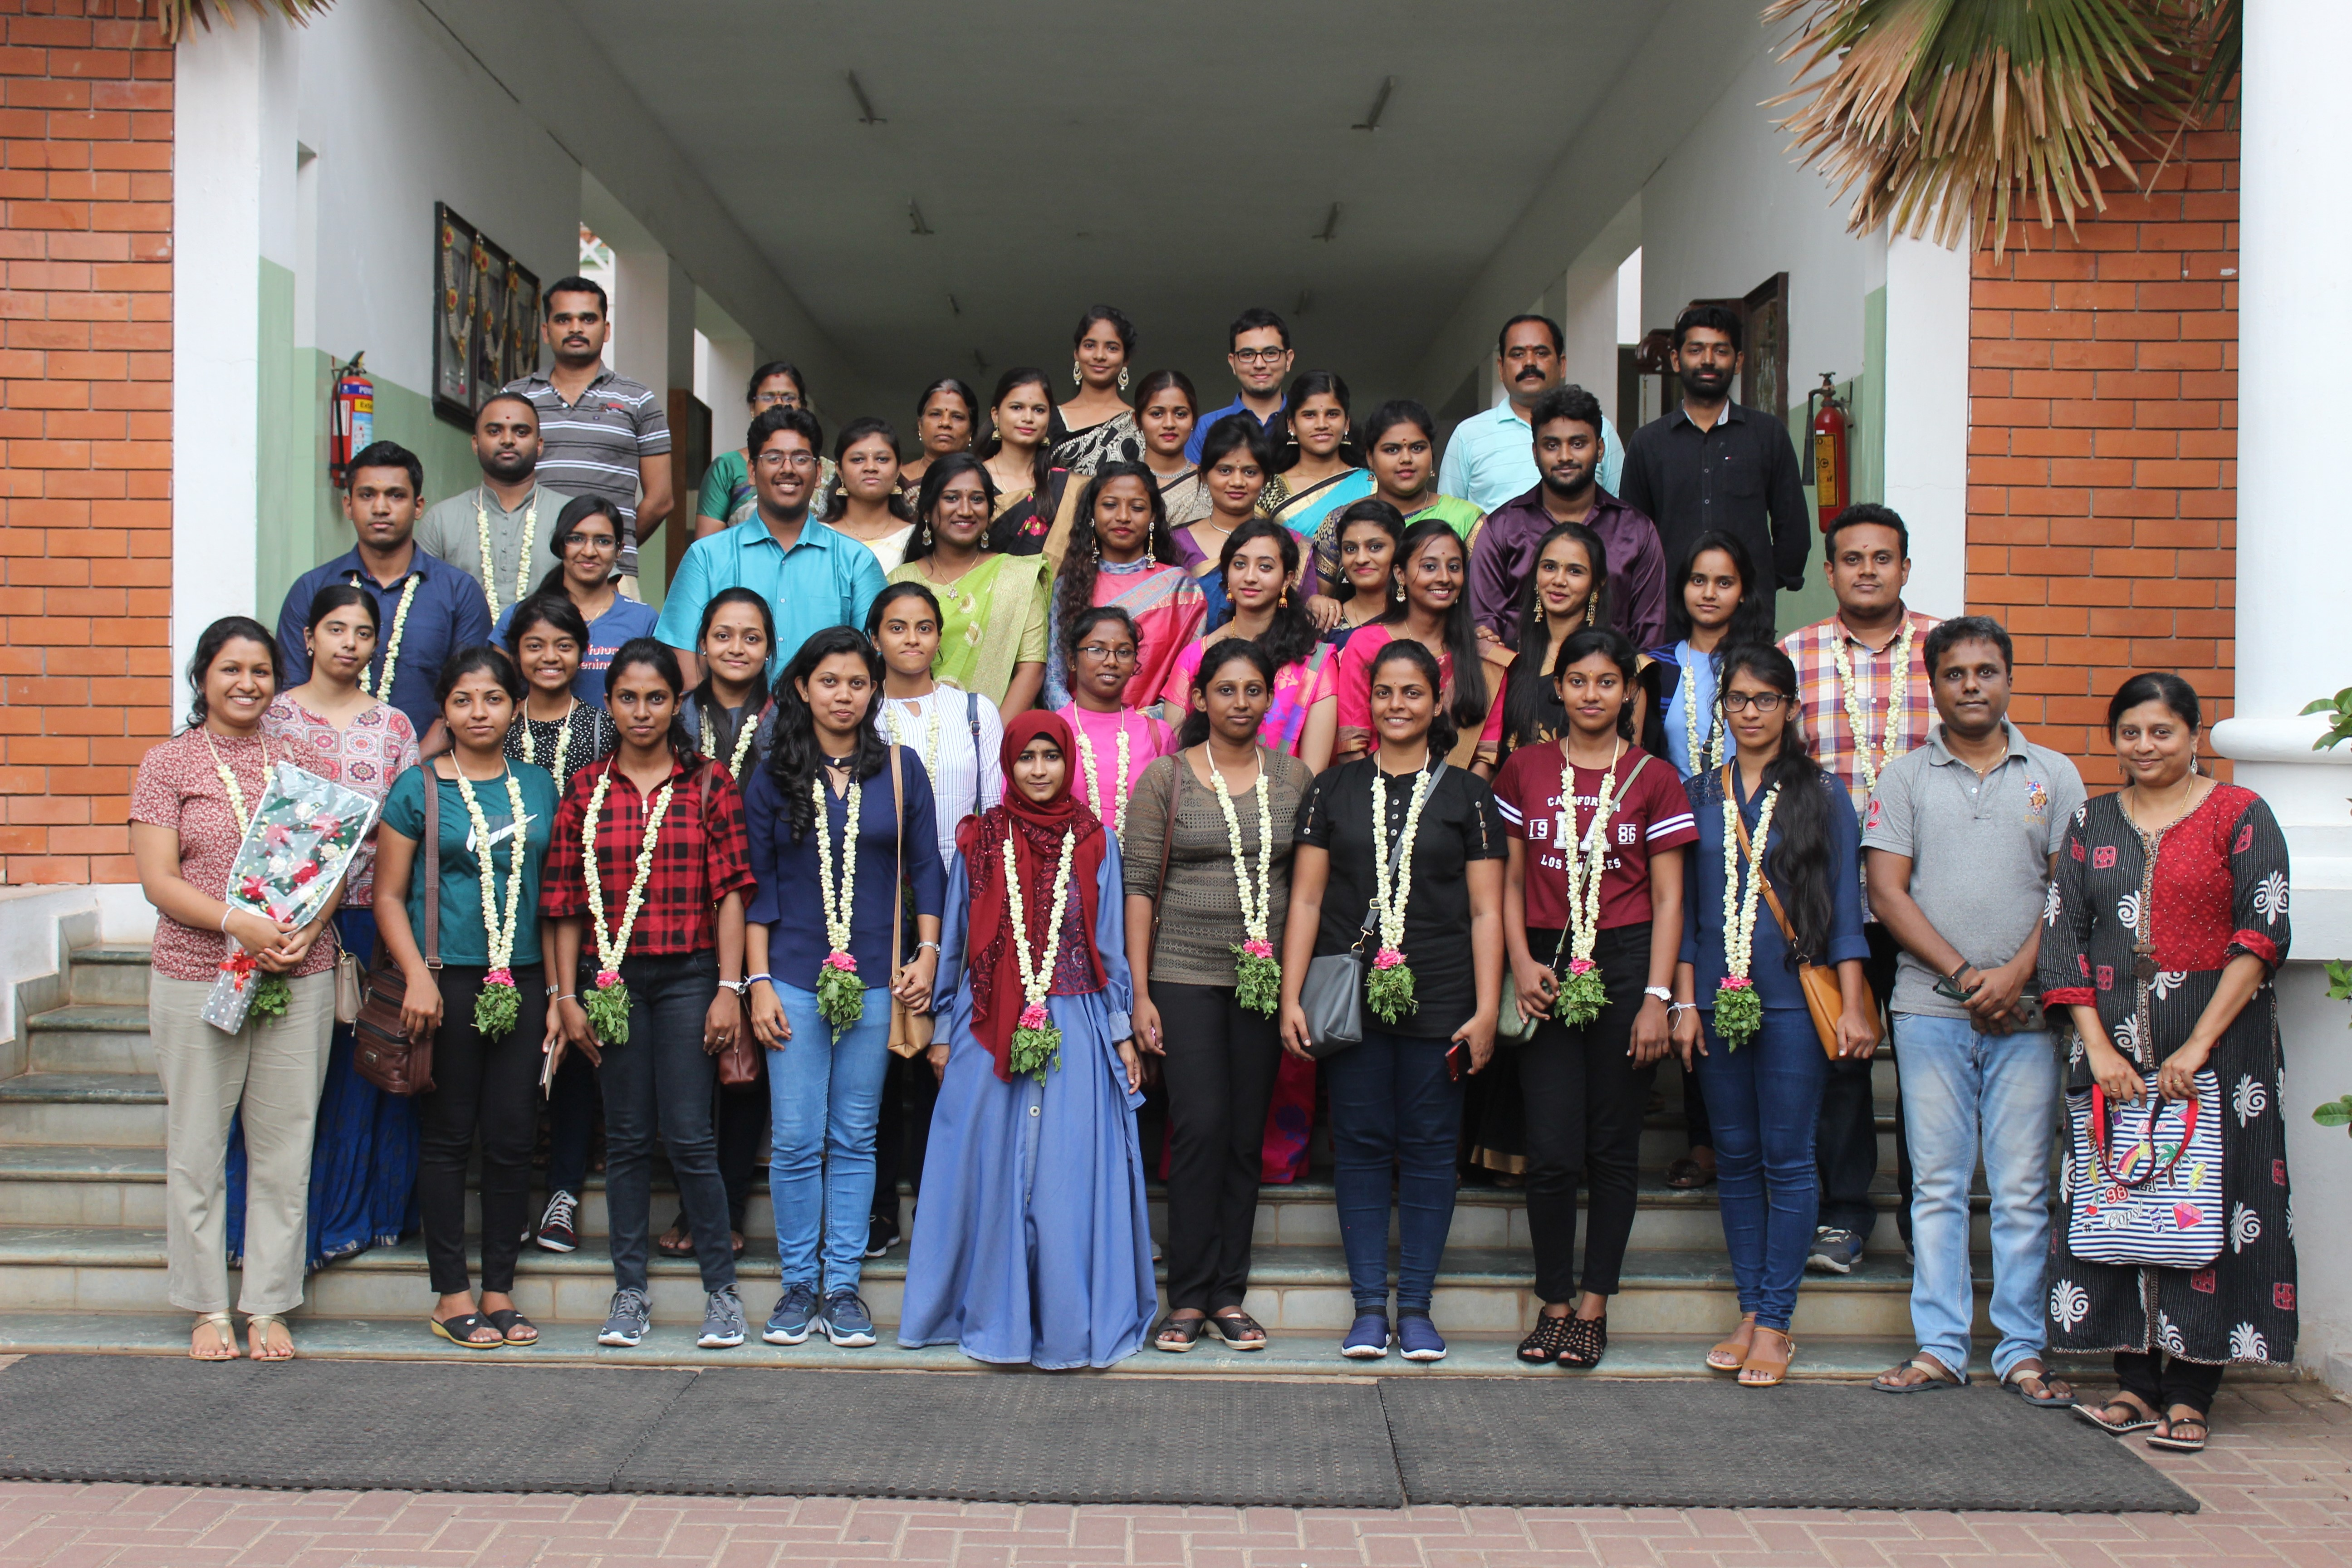 Final year student of the Department participated to the Rural Immersion Programme in India